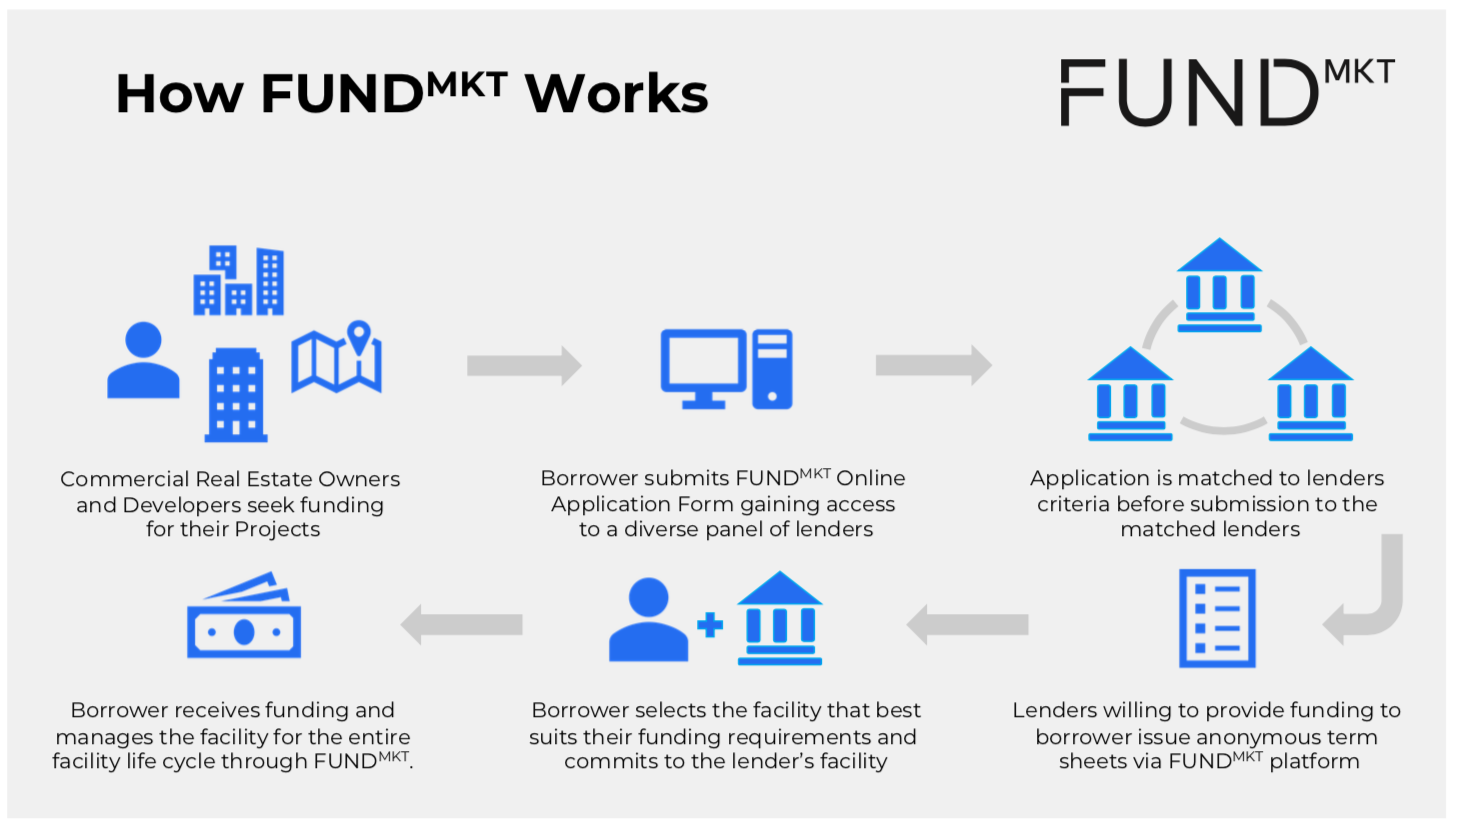 FundMKT is redefining the way in which funding is sourced in the commercial real estate industry.